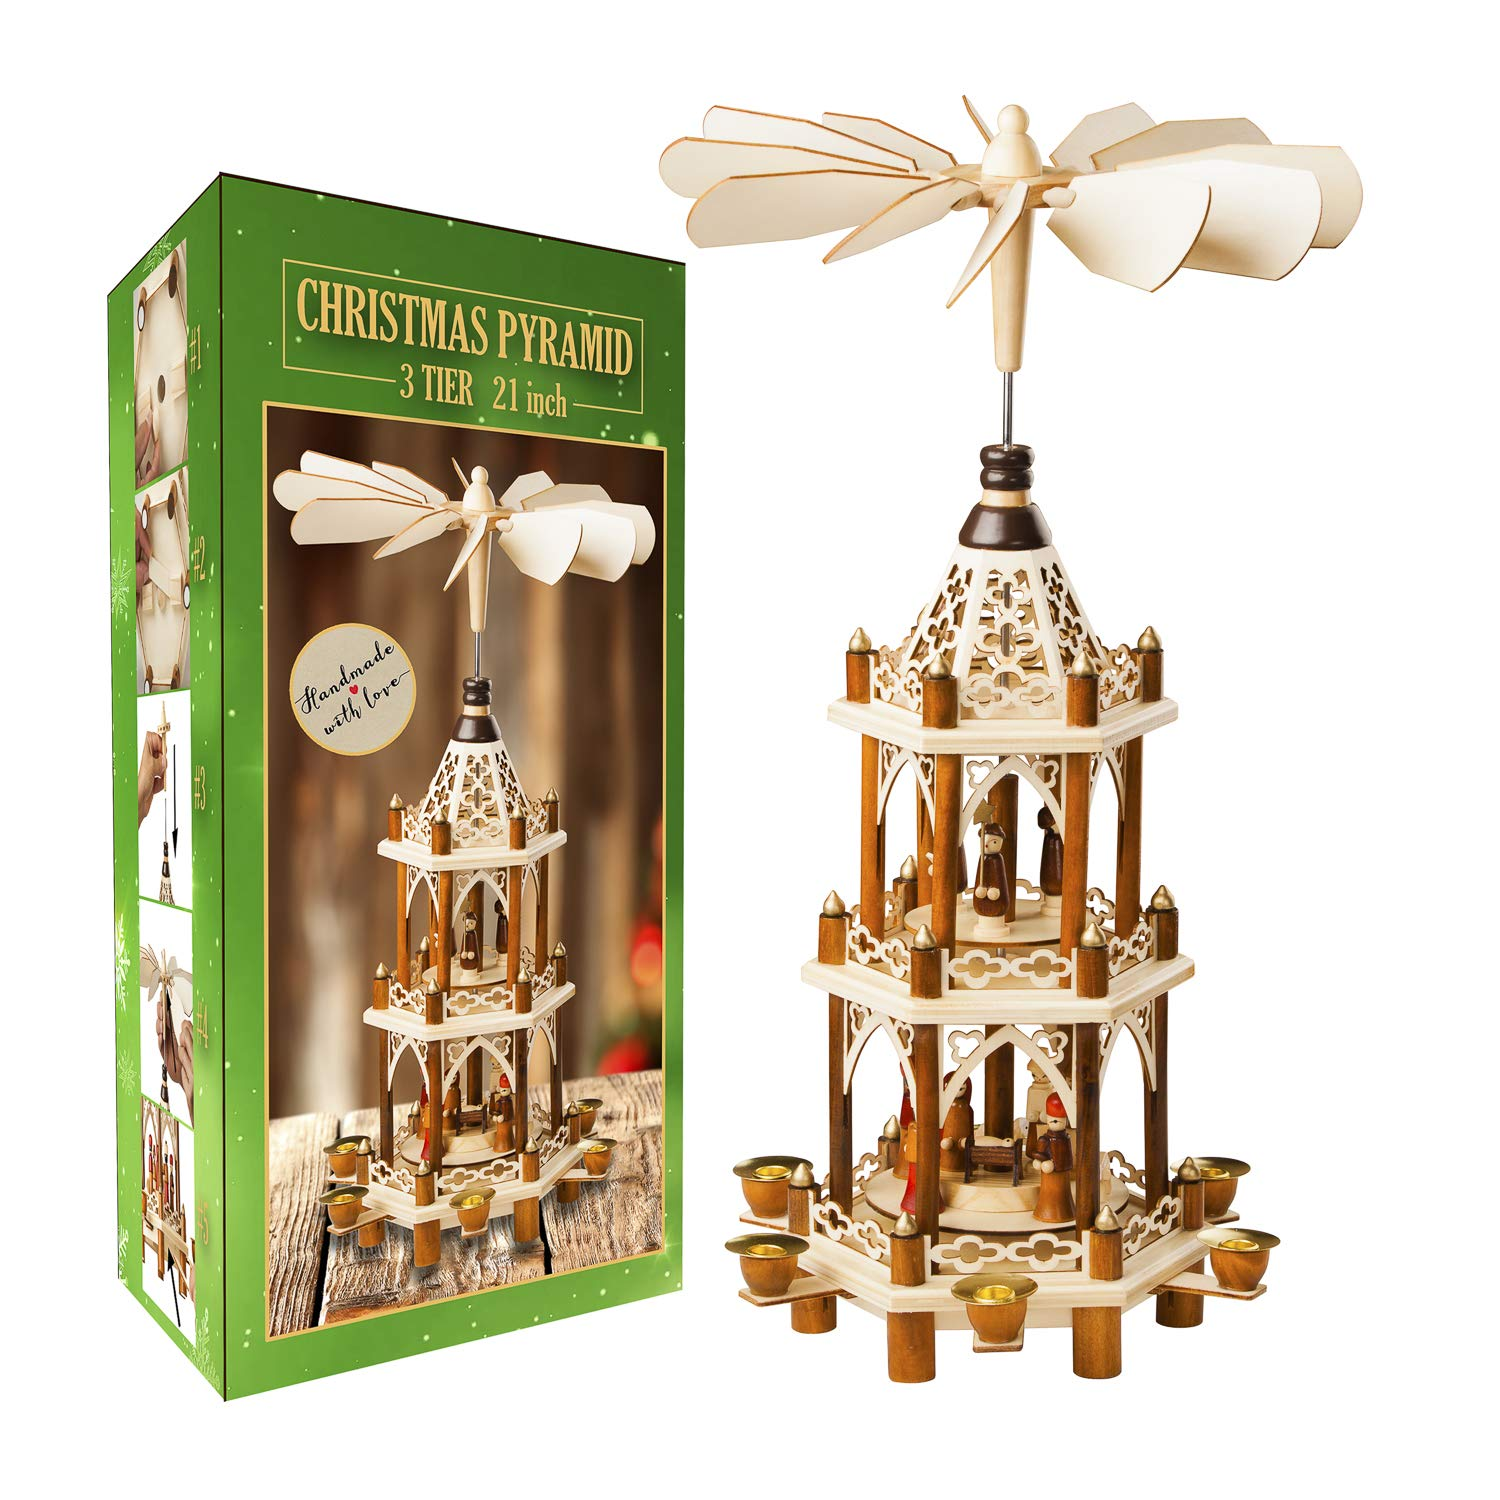 German Christmas Decoration Pyramid - 21 Inches - Wood Nativity Scene Set - Under the Christmas Tree and Table Top Holiday Decor - Nativity Play 3 Tiers Carousel with 6 Candle Holders - German Design by USA SUPREME